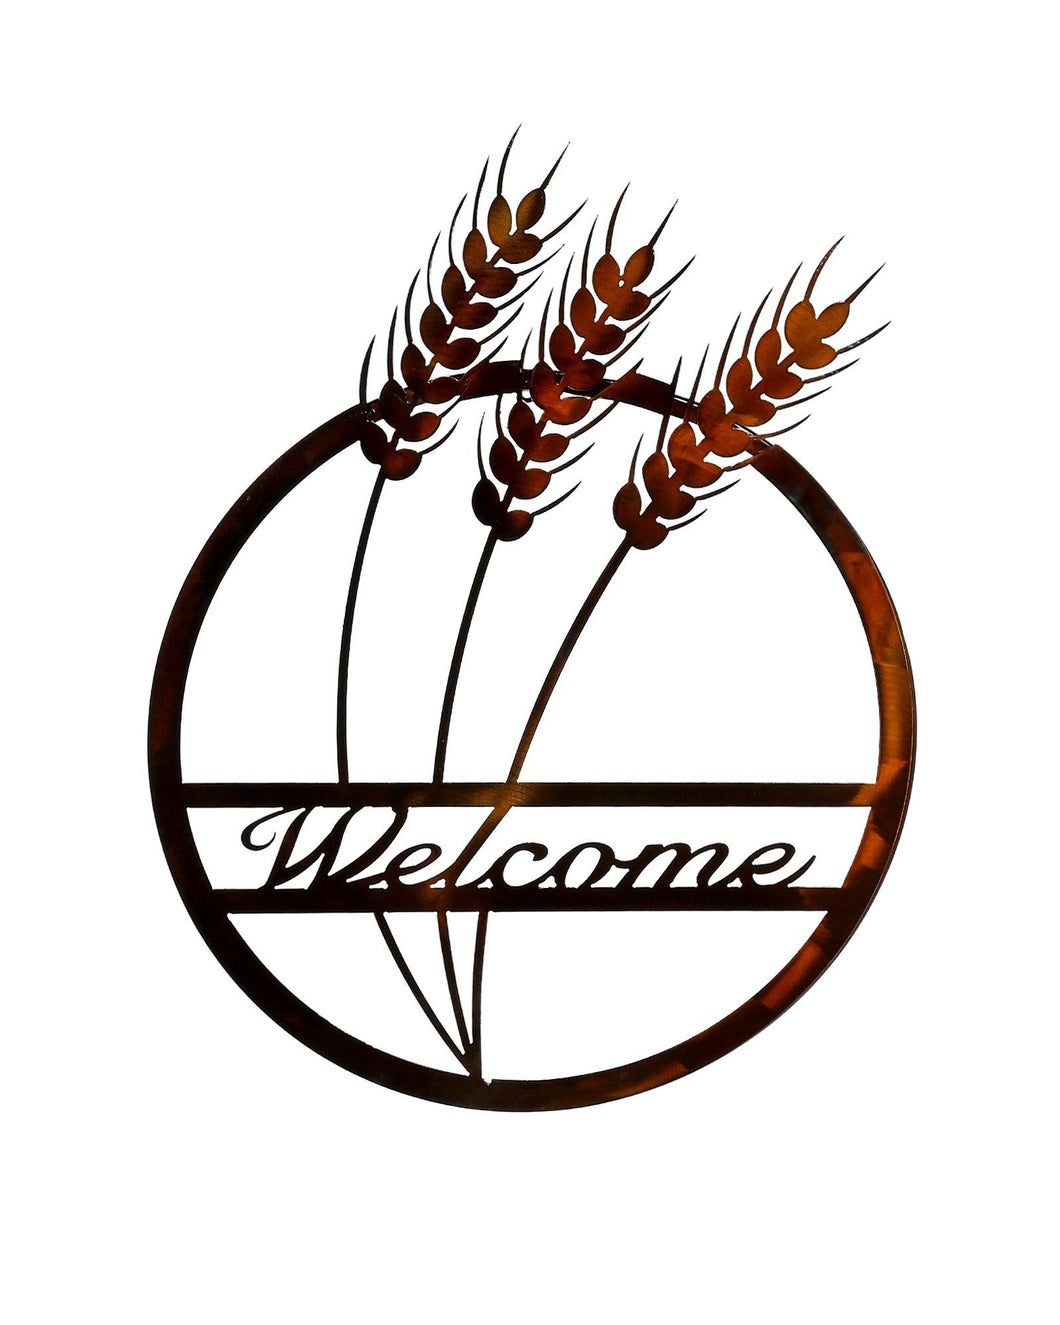 Wheat Welcome Wallhanging